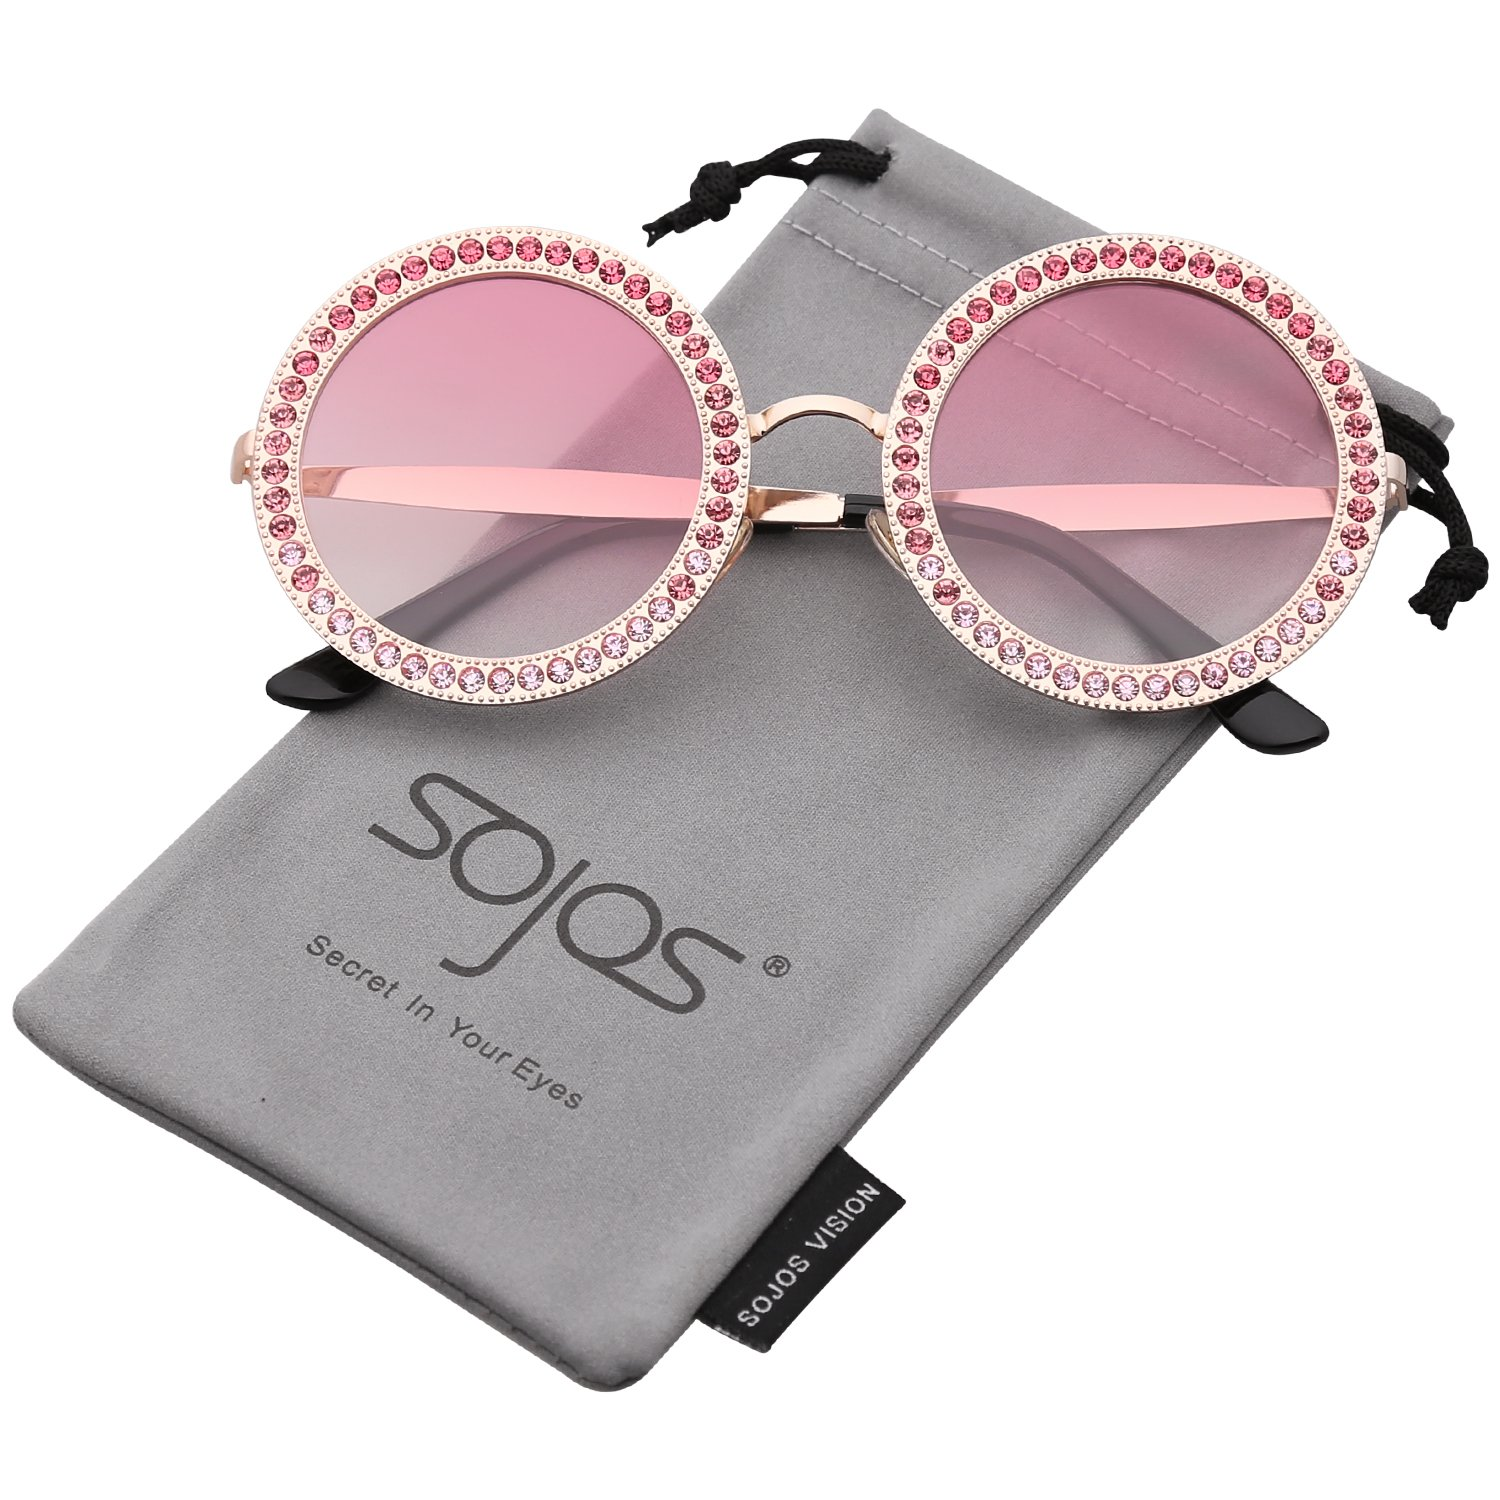 3a9b3408465 Amazon.com  SOJOS Round Oversized Rhinestone Sunglasses for Women Diamond  Shades SJ1095 with Gold Frame Gradient Pink Lens with Pink Diamond  Clothing